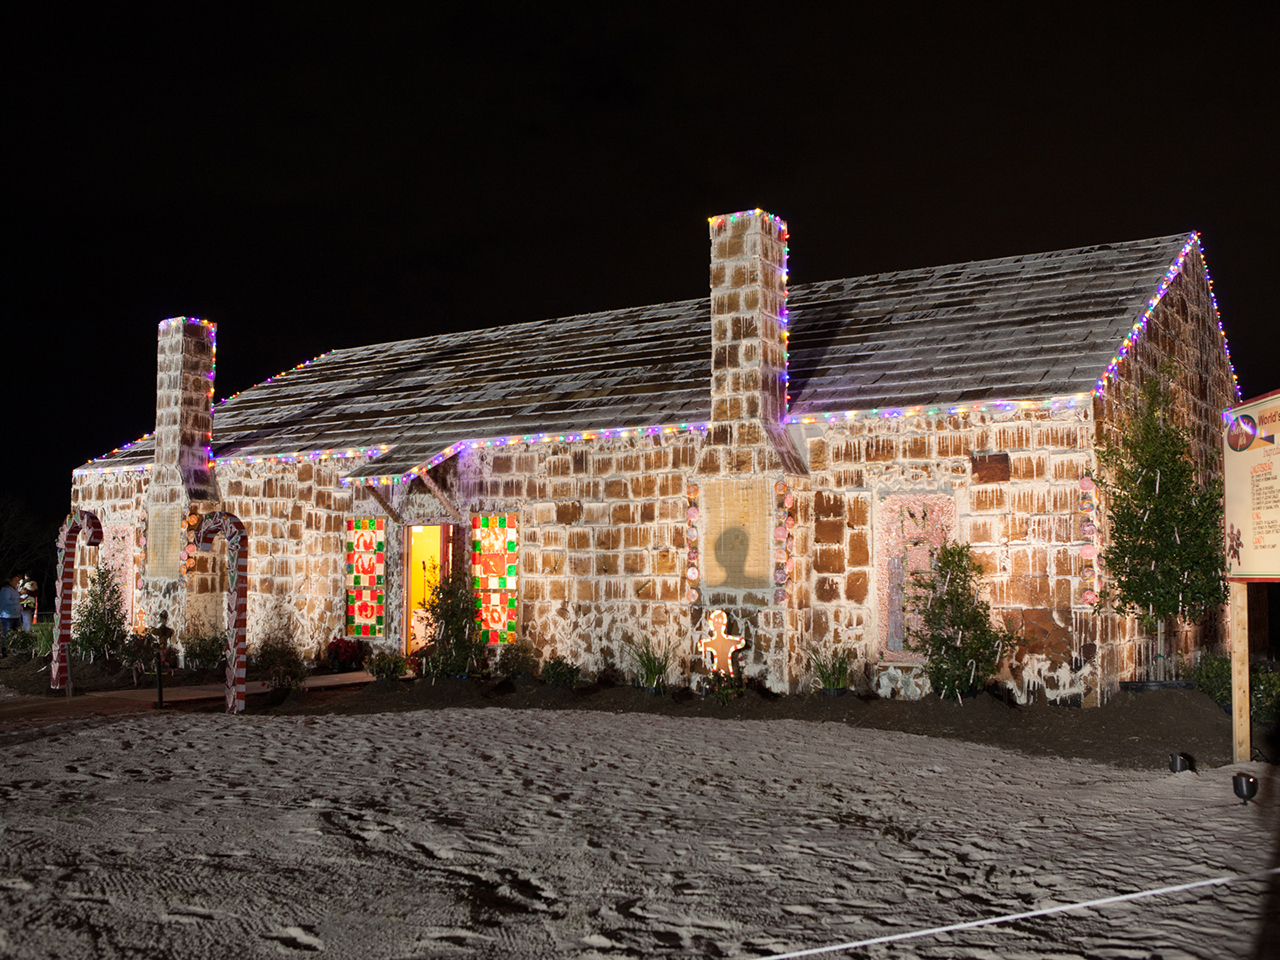 Sweet World S Largest Gingerbread House Raises Money For Hospital